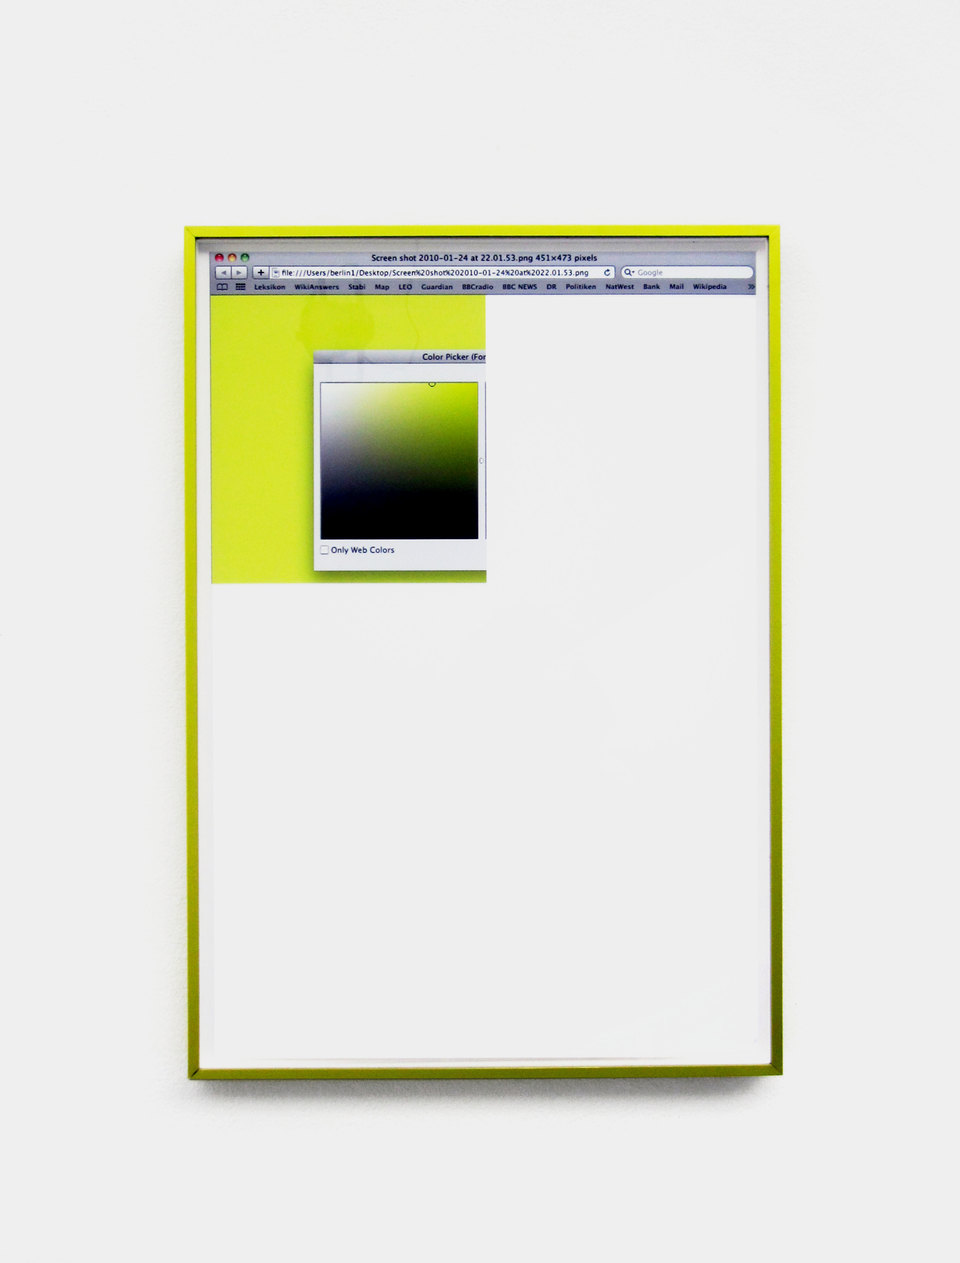 Color Picker 1 2010, Digital print, anodised aluminium frame, (51 x 35.5 cms / 20 1/8 x 14 ins), Cell Project Space